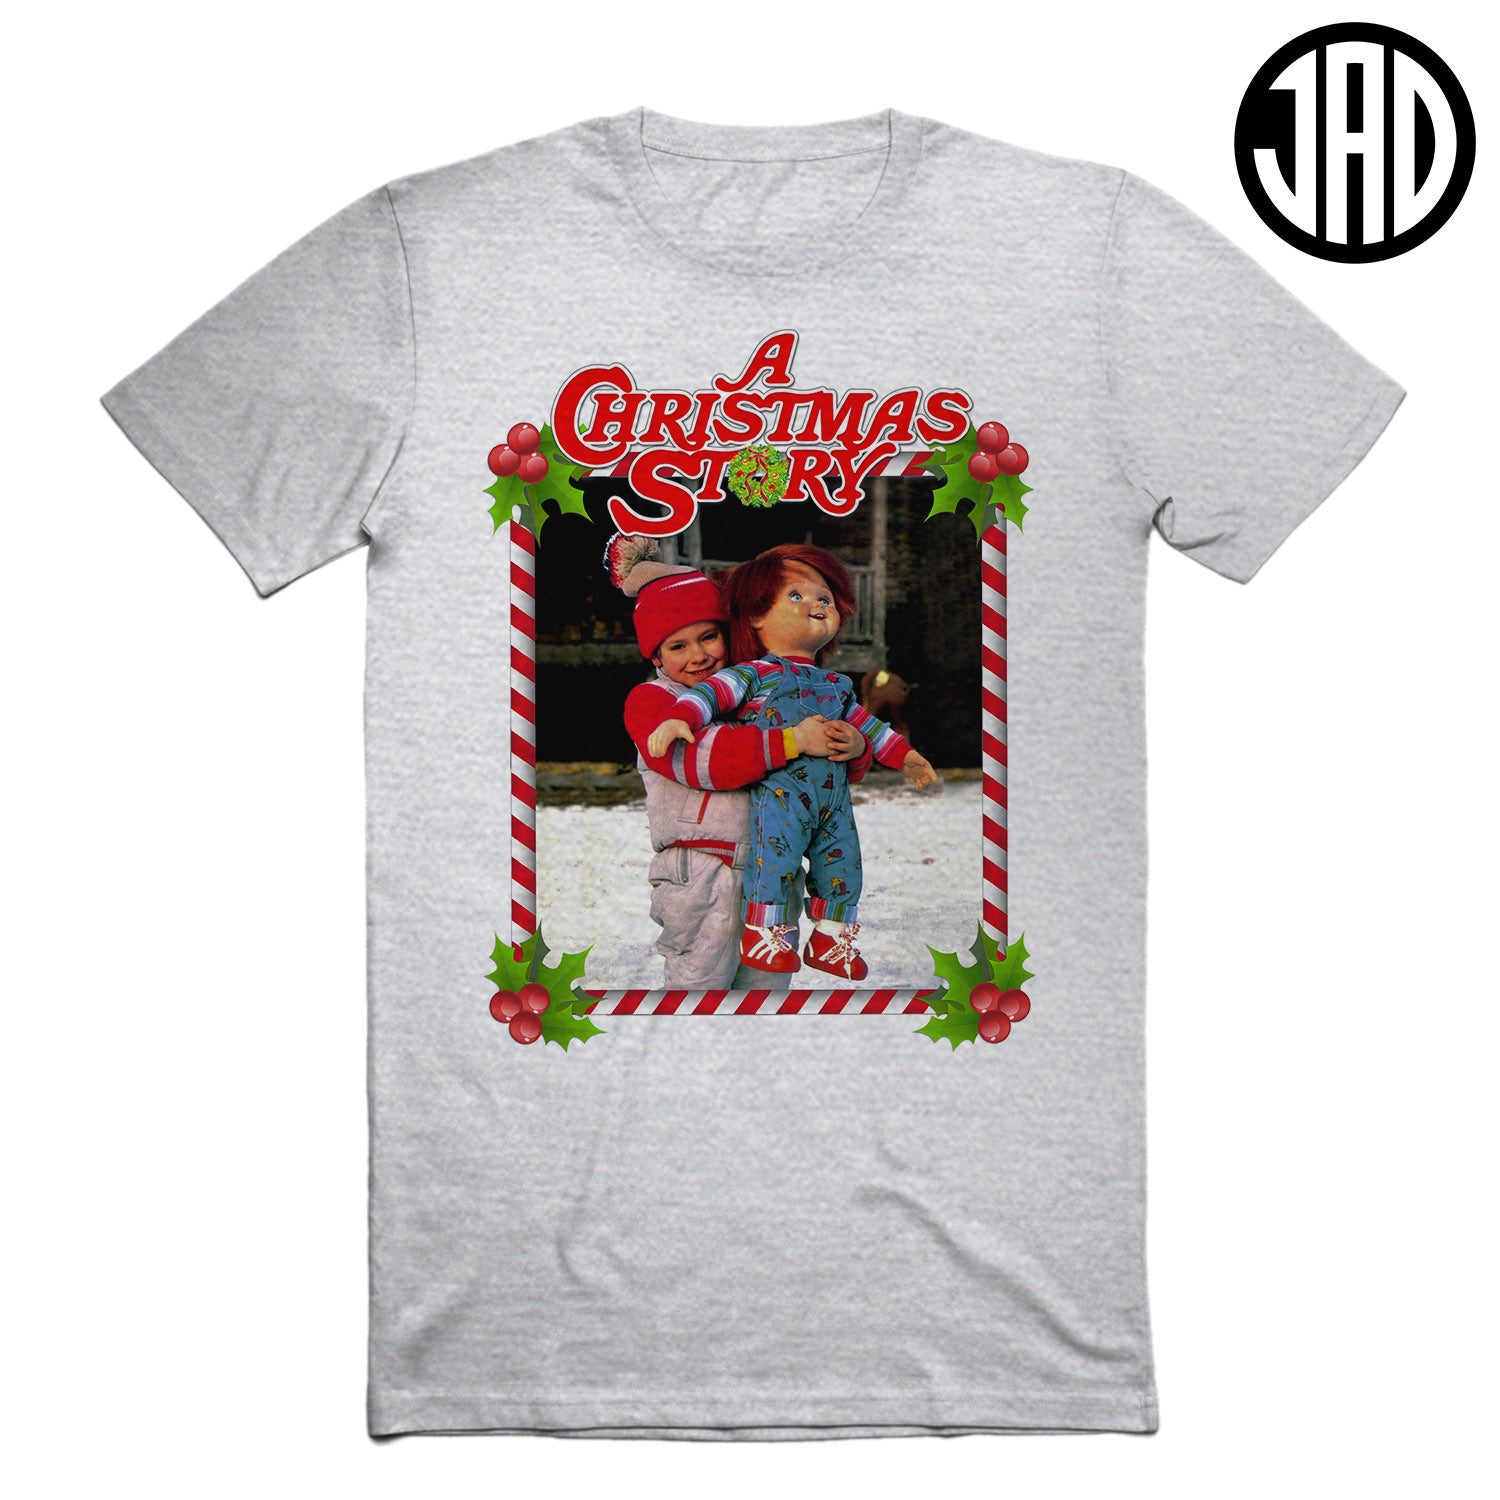 A Christmas Story - Men's (Unisex) Tee